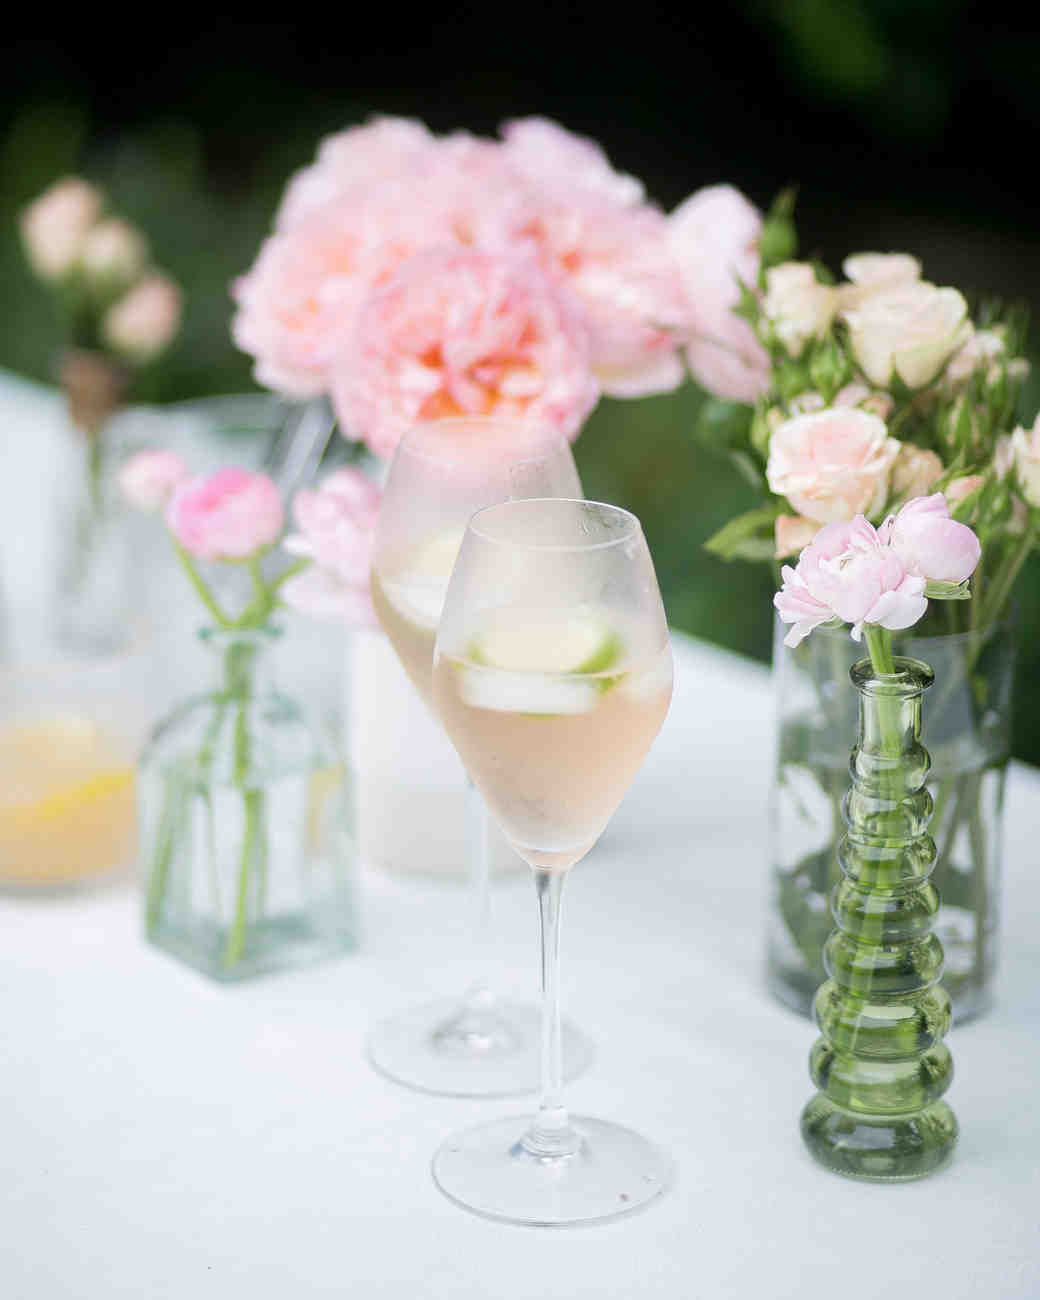 fashionable-hostess-bridal-shower-sangria-flowers-0416.jpg